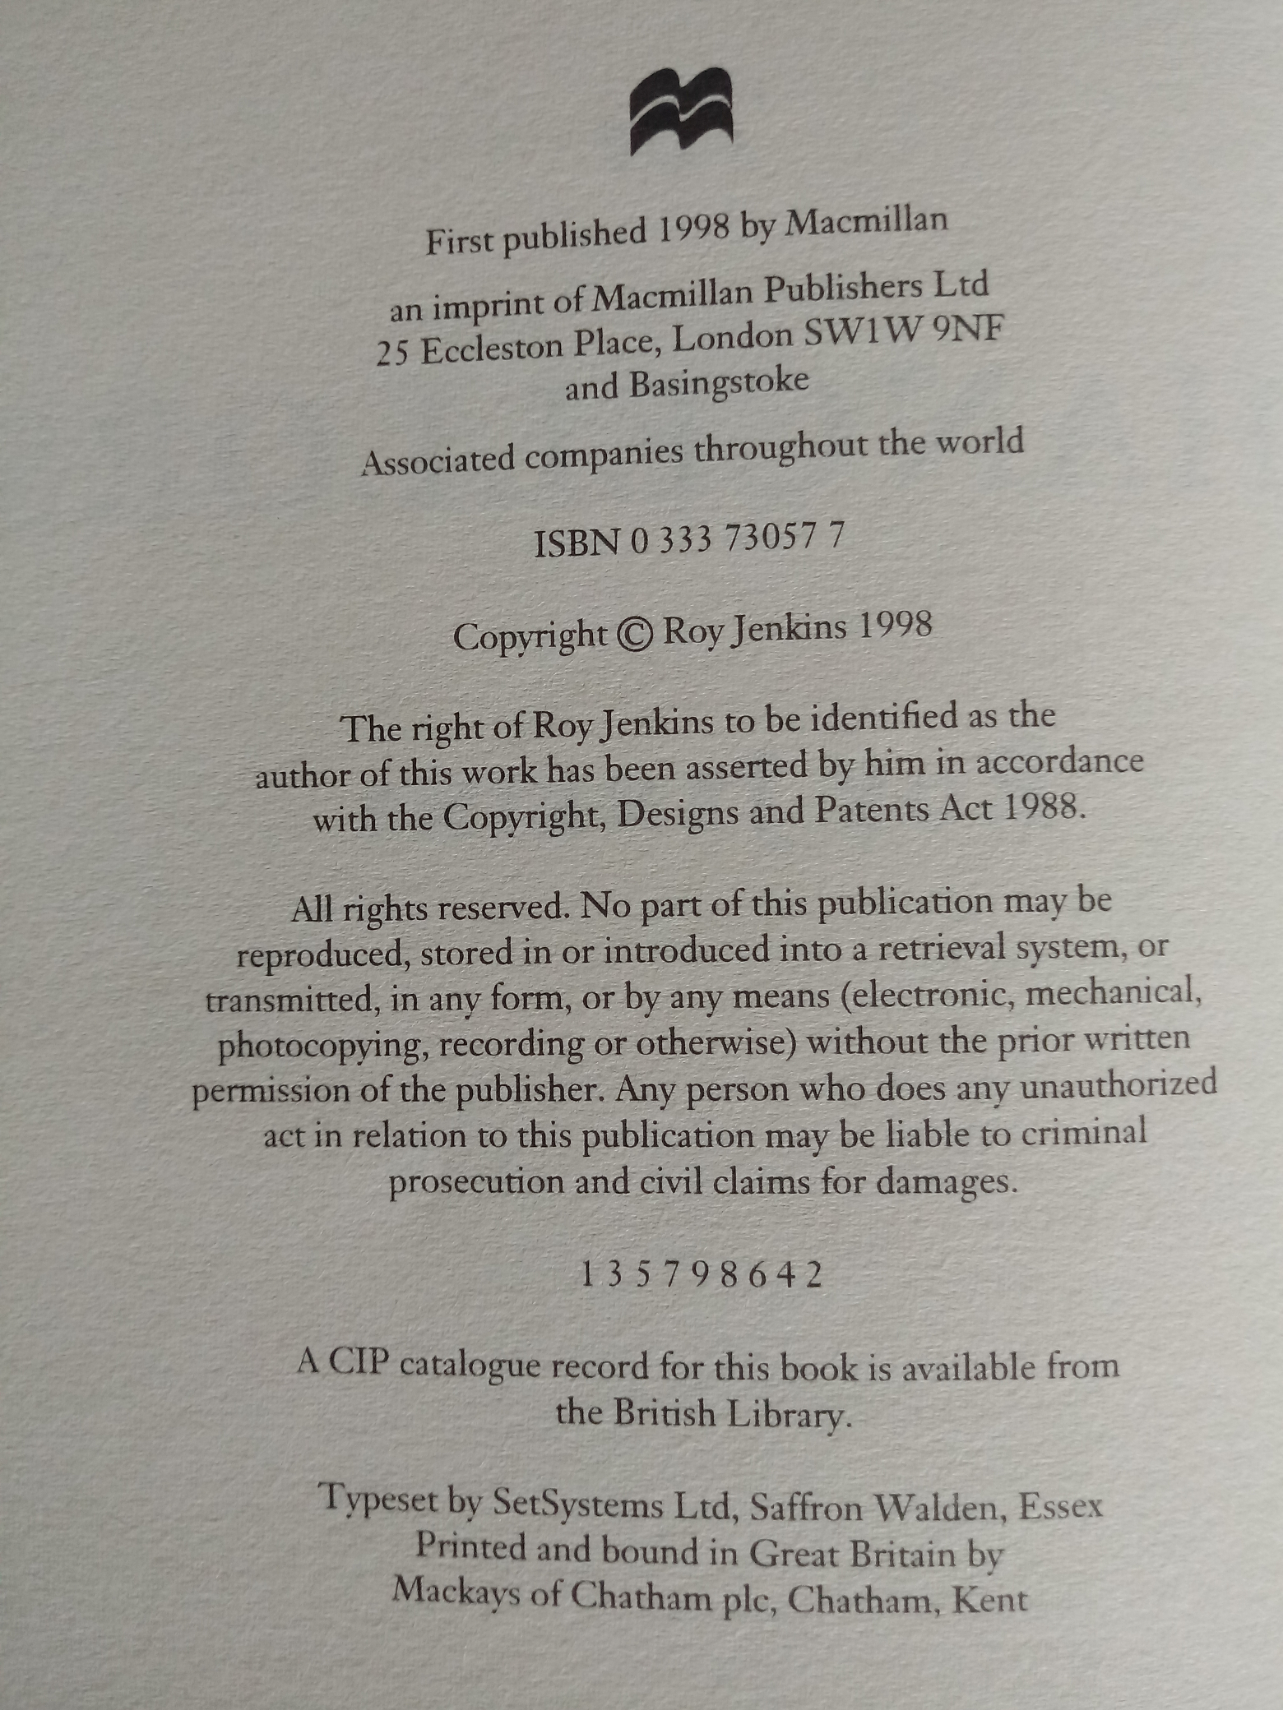 The Chancellors by Roy Jenkins hardback book 497 pages with inscription Published 1998 Macmillan - Image 2 of 2